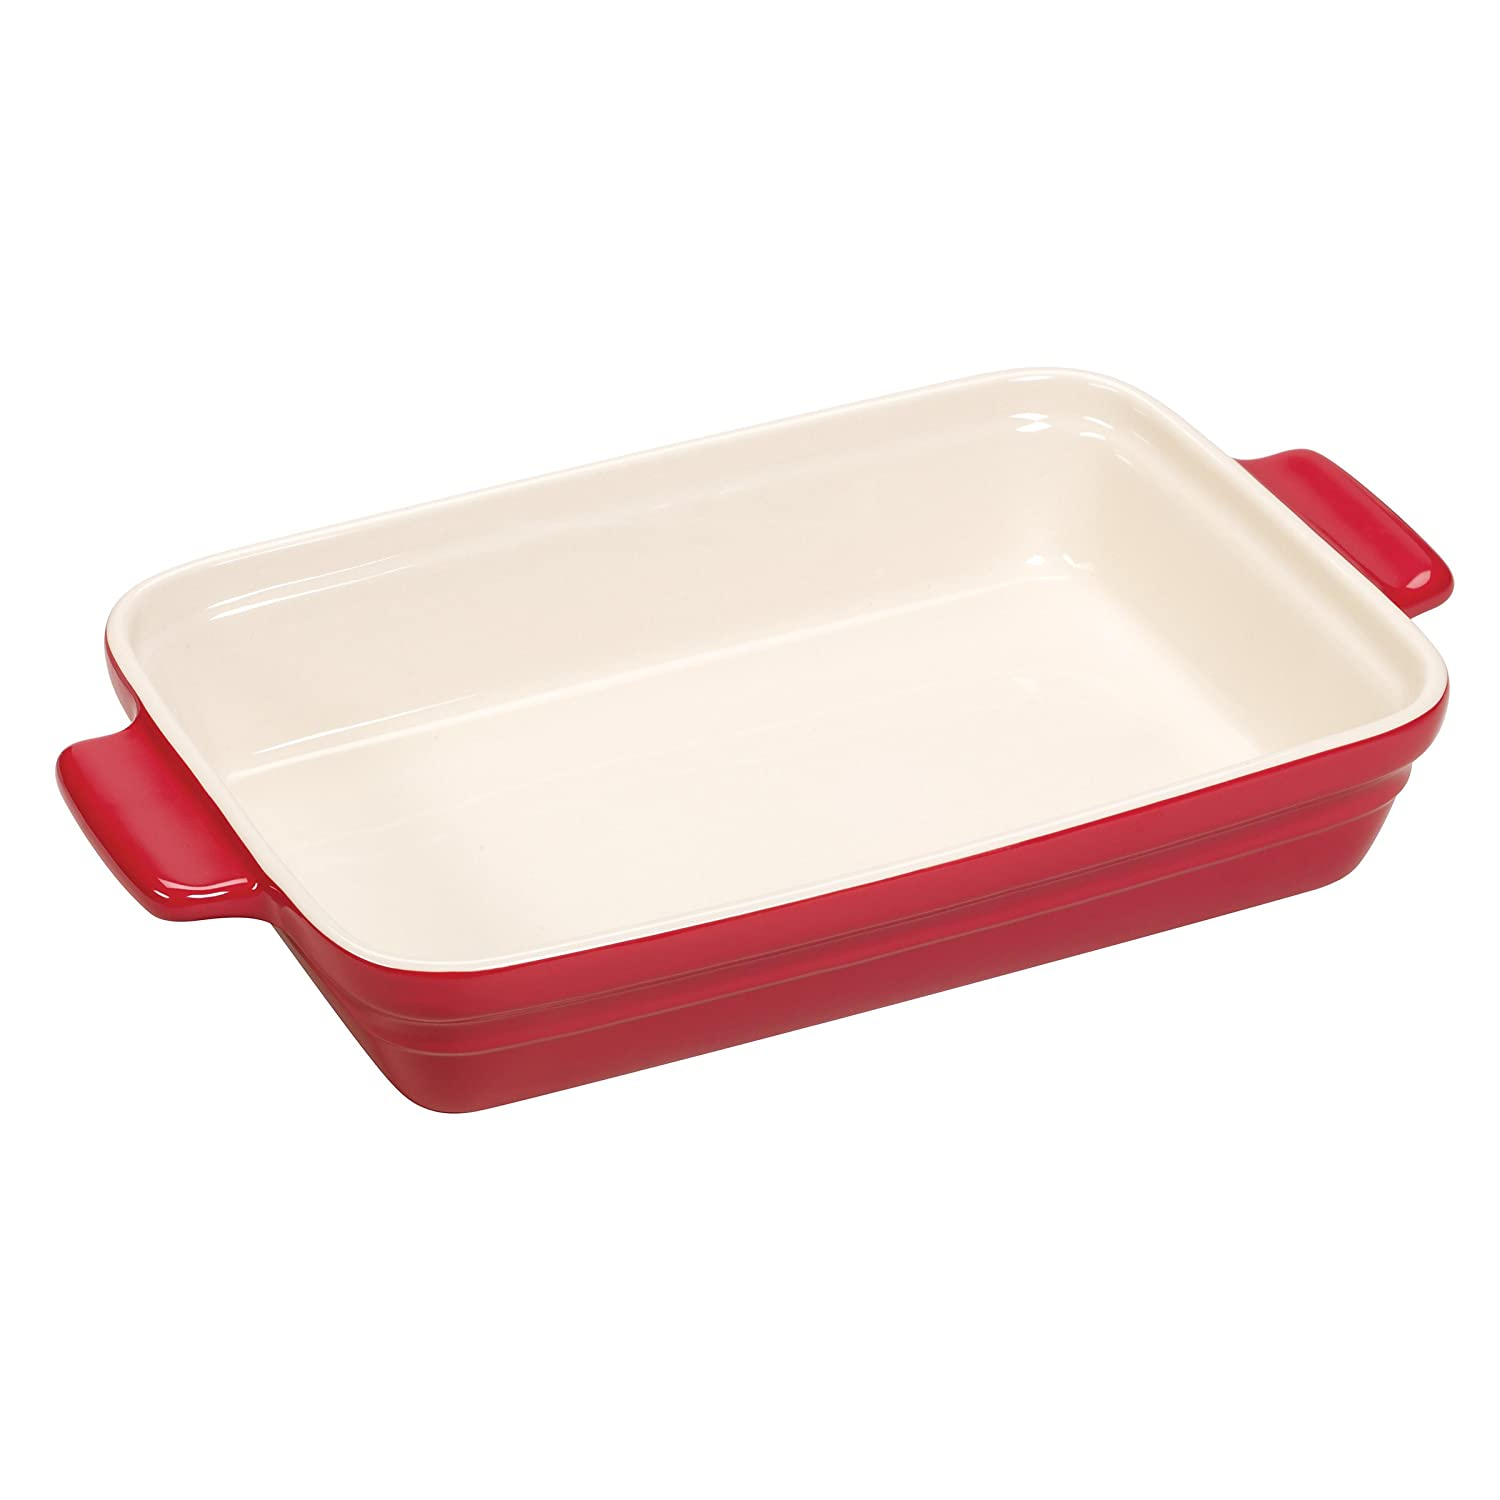 Baker's Advantage Ceramic Rectangular Baker, 9-by-13-Inch, Blue Baker's Advantage 5111862